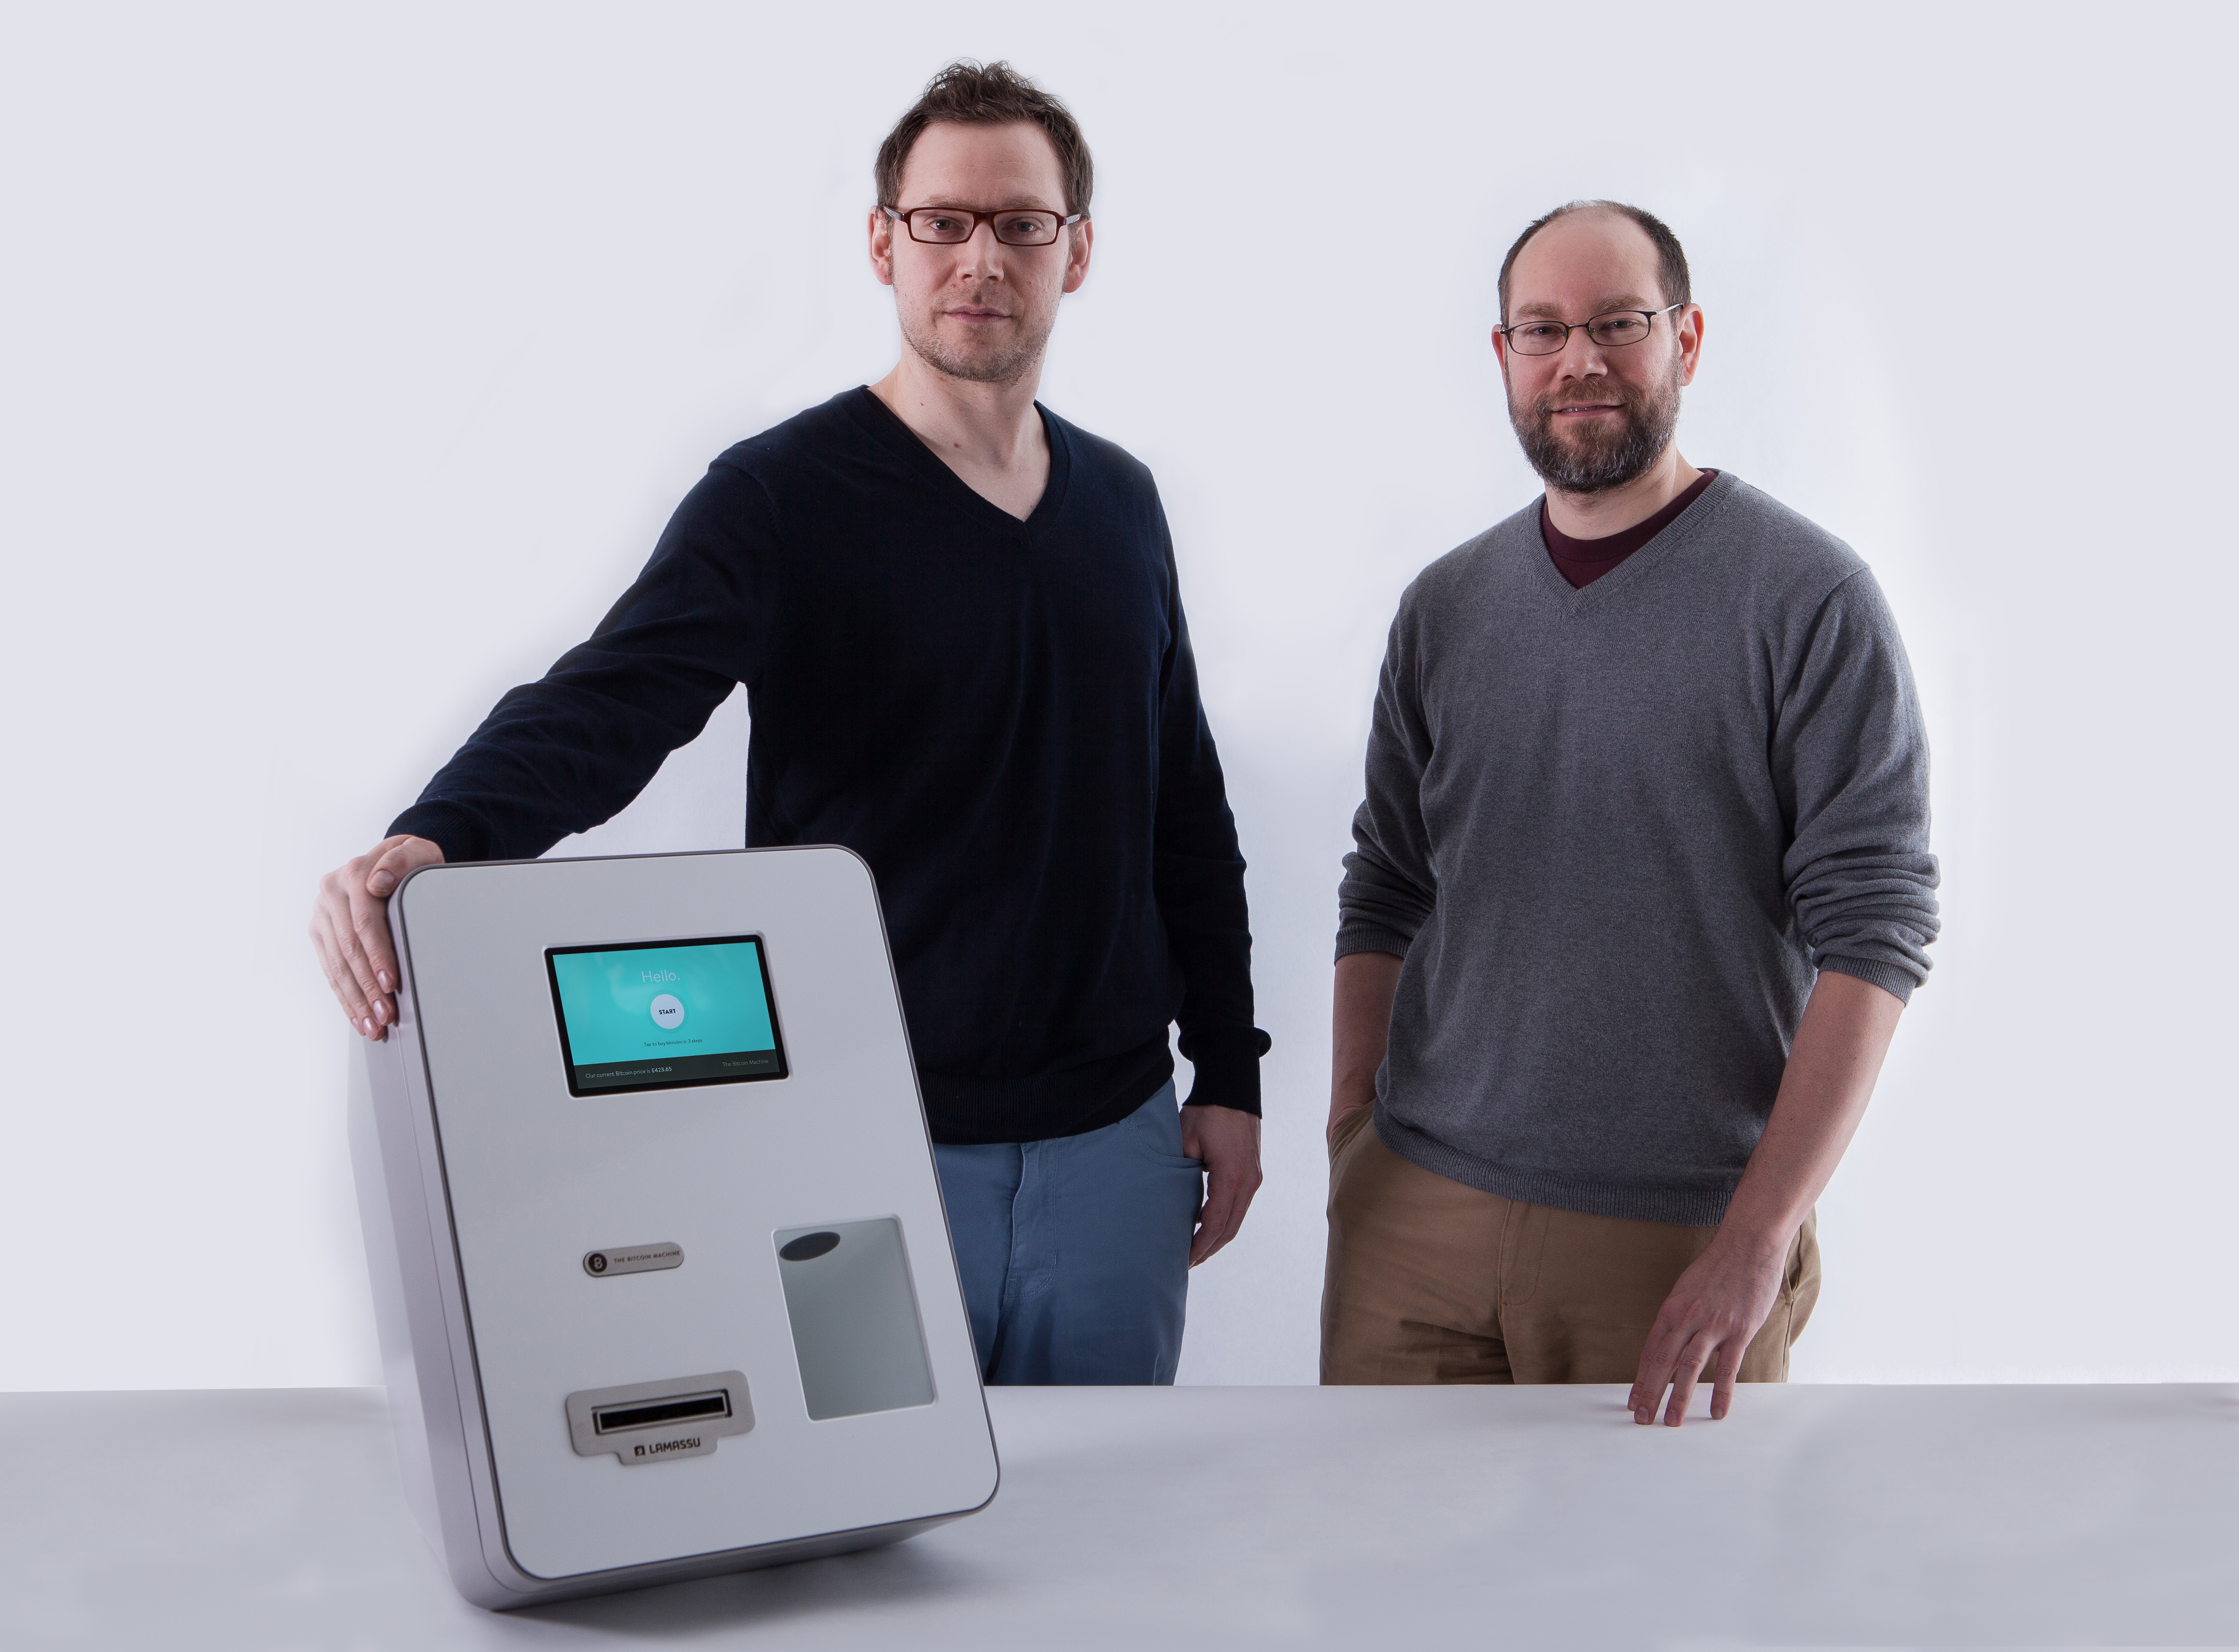 Brothers and co-founders Zach and Josh Harvey with a Lamassu ATM.